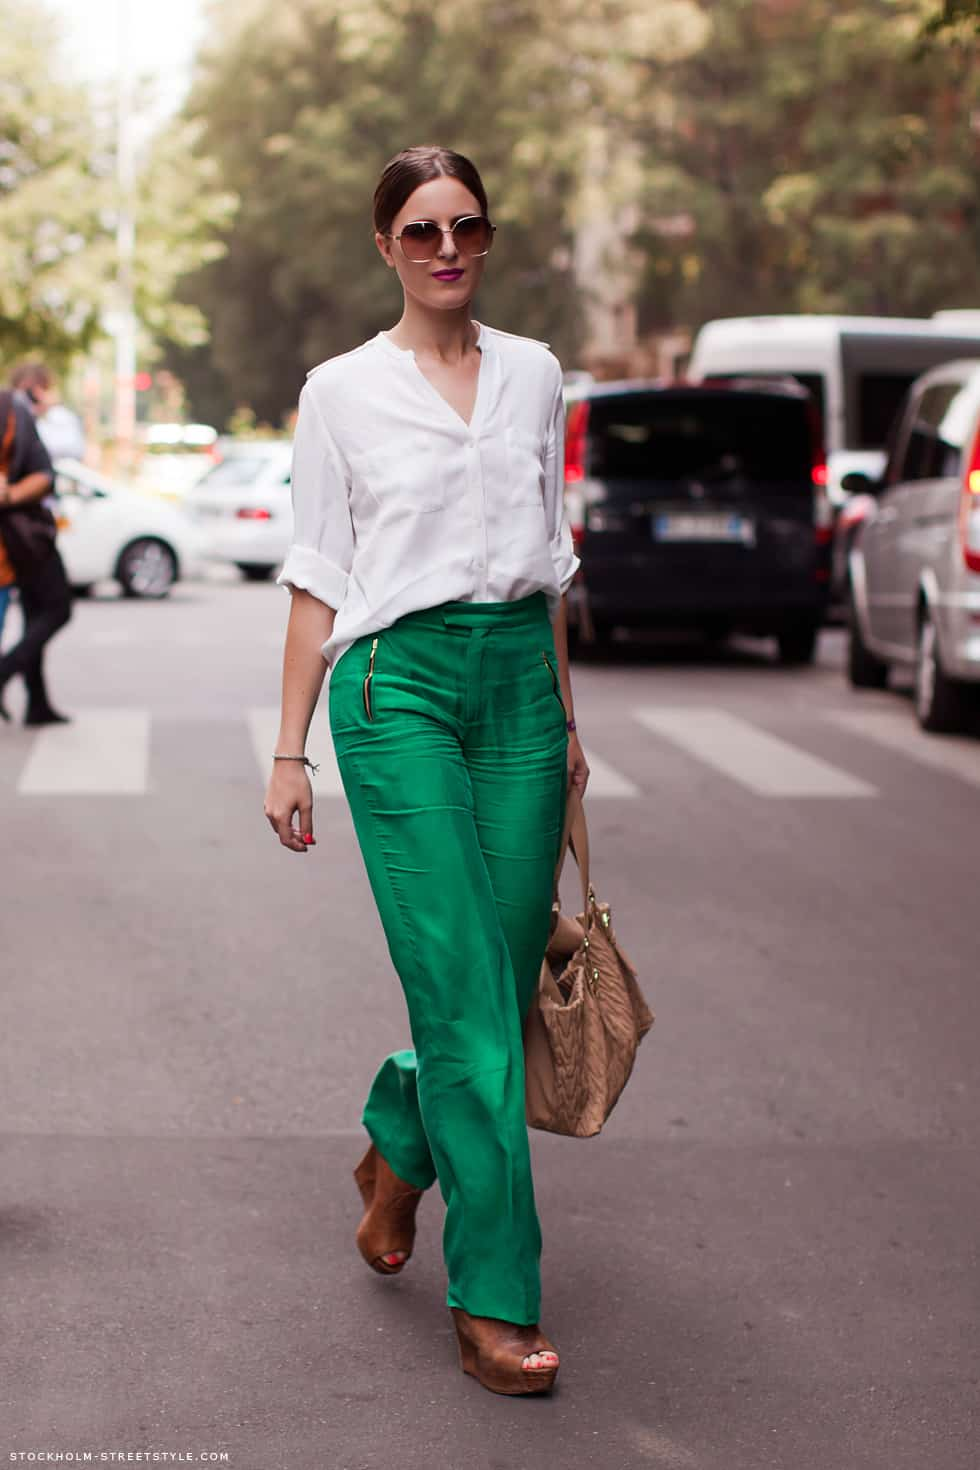 street-style-green-outftis-spring-looks-4